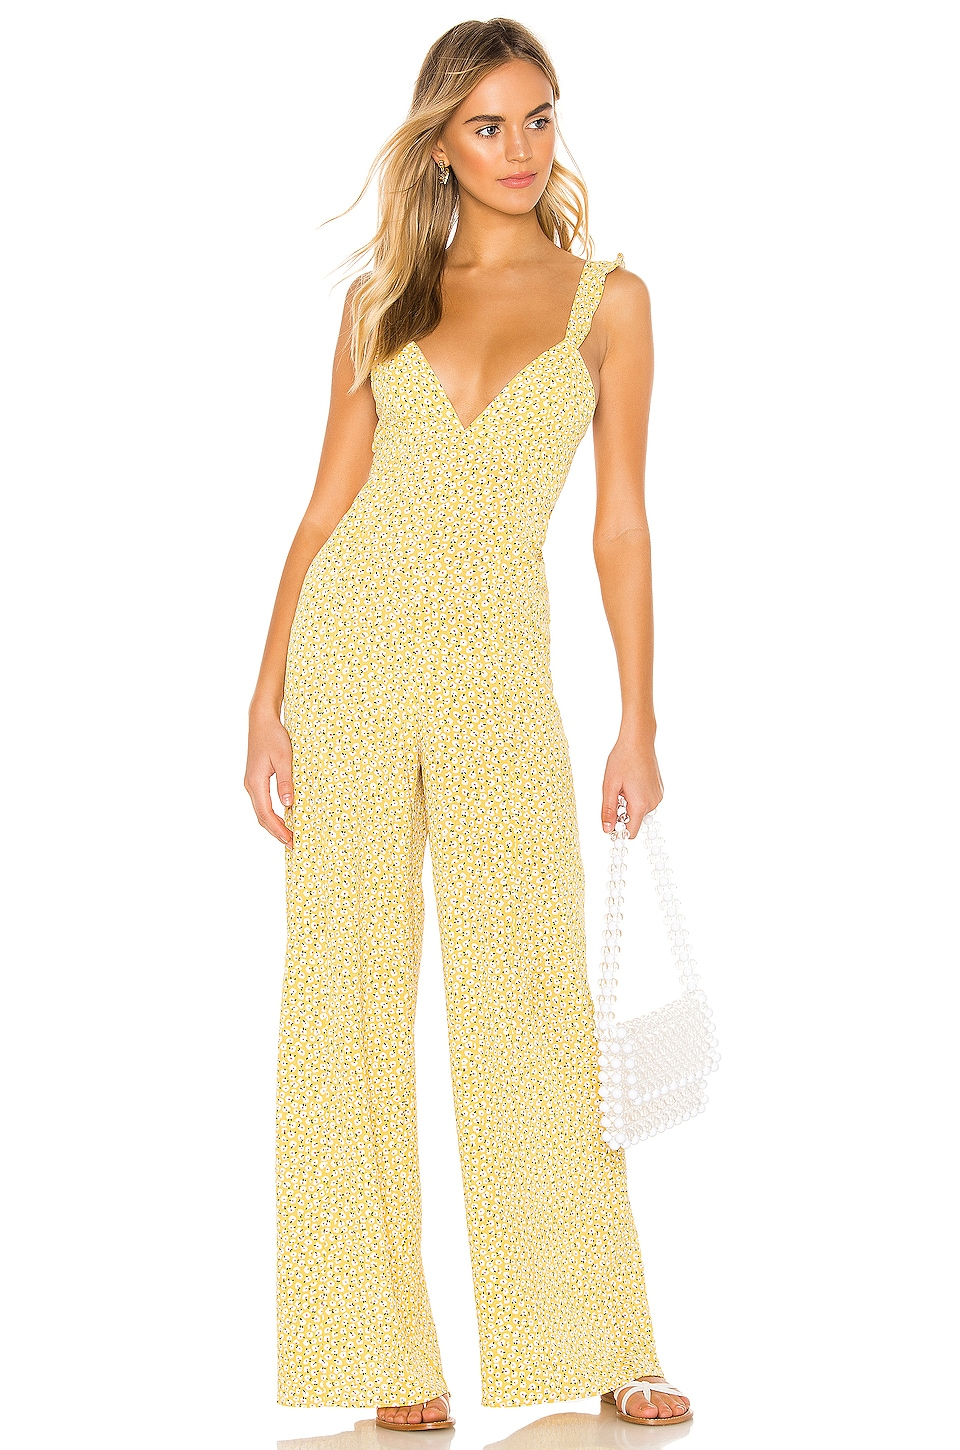 RESA Jilly Jumpsuit in Honeysuckle Floral